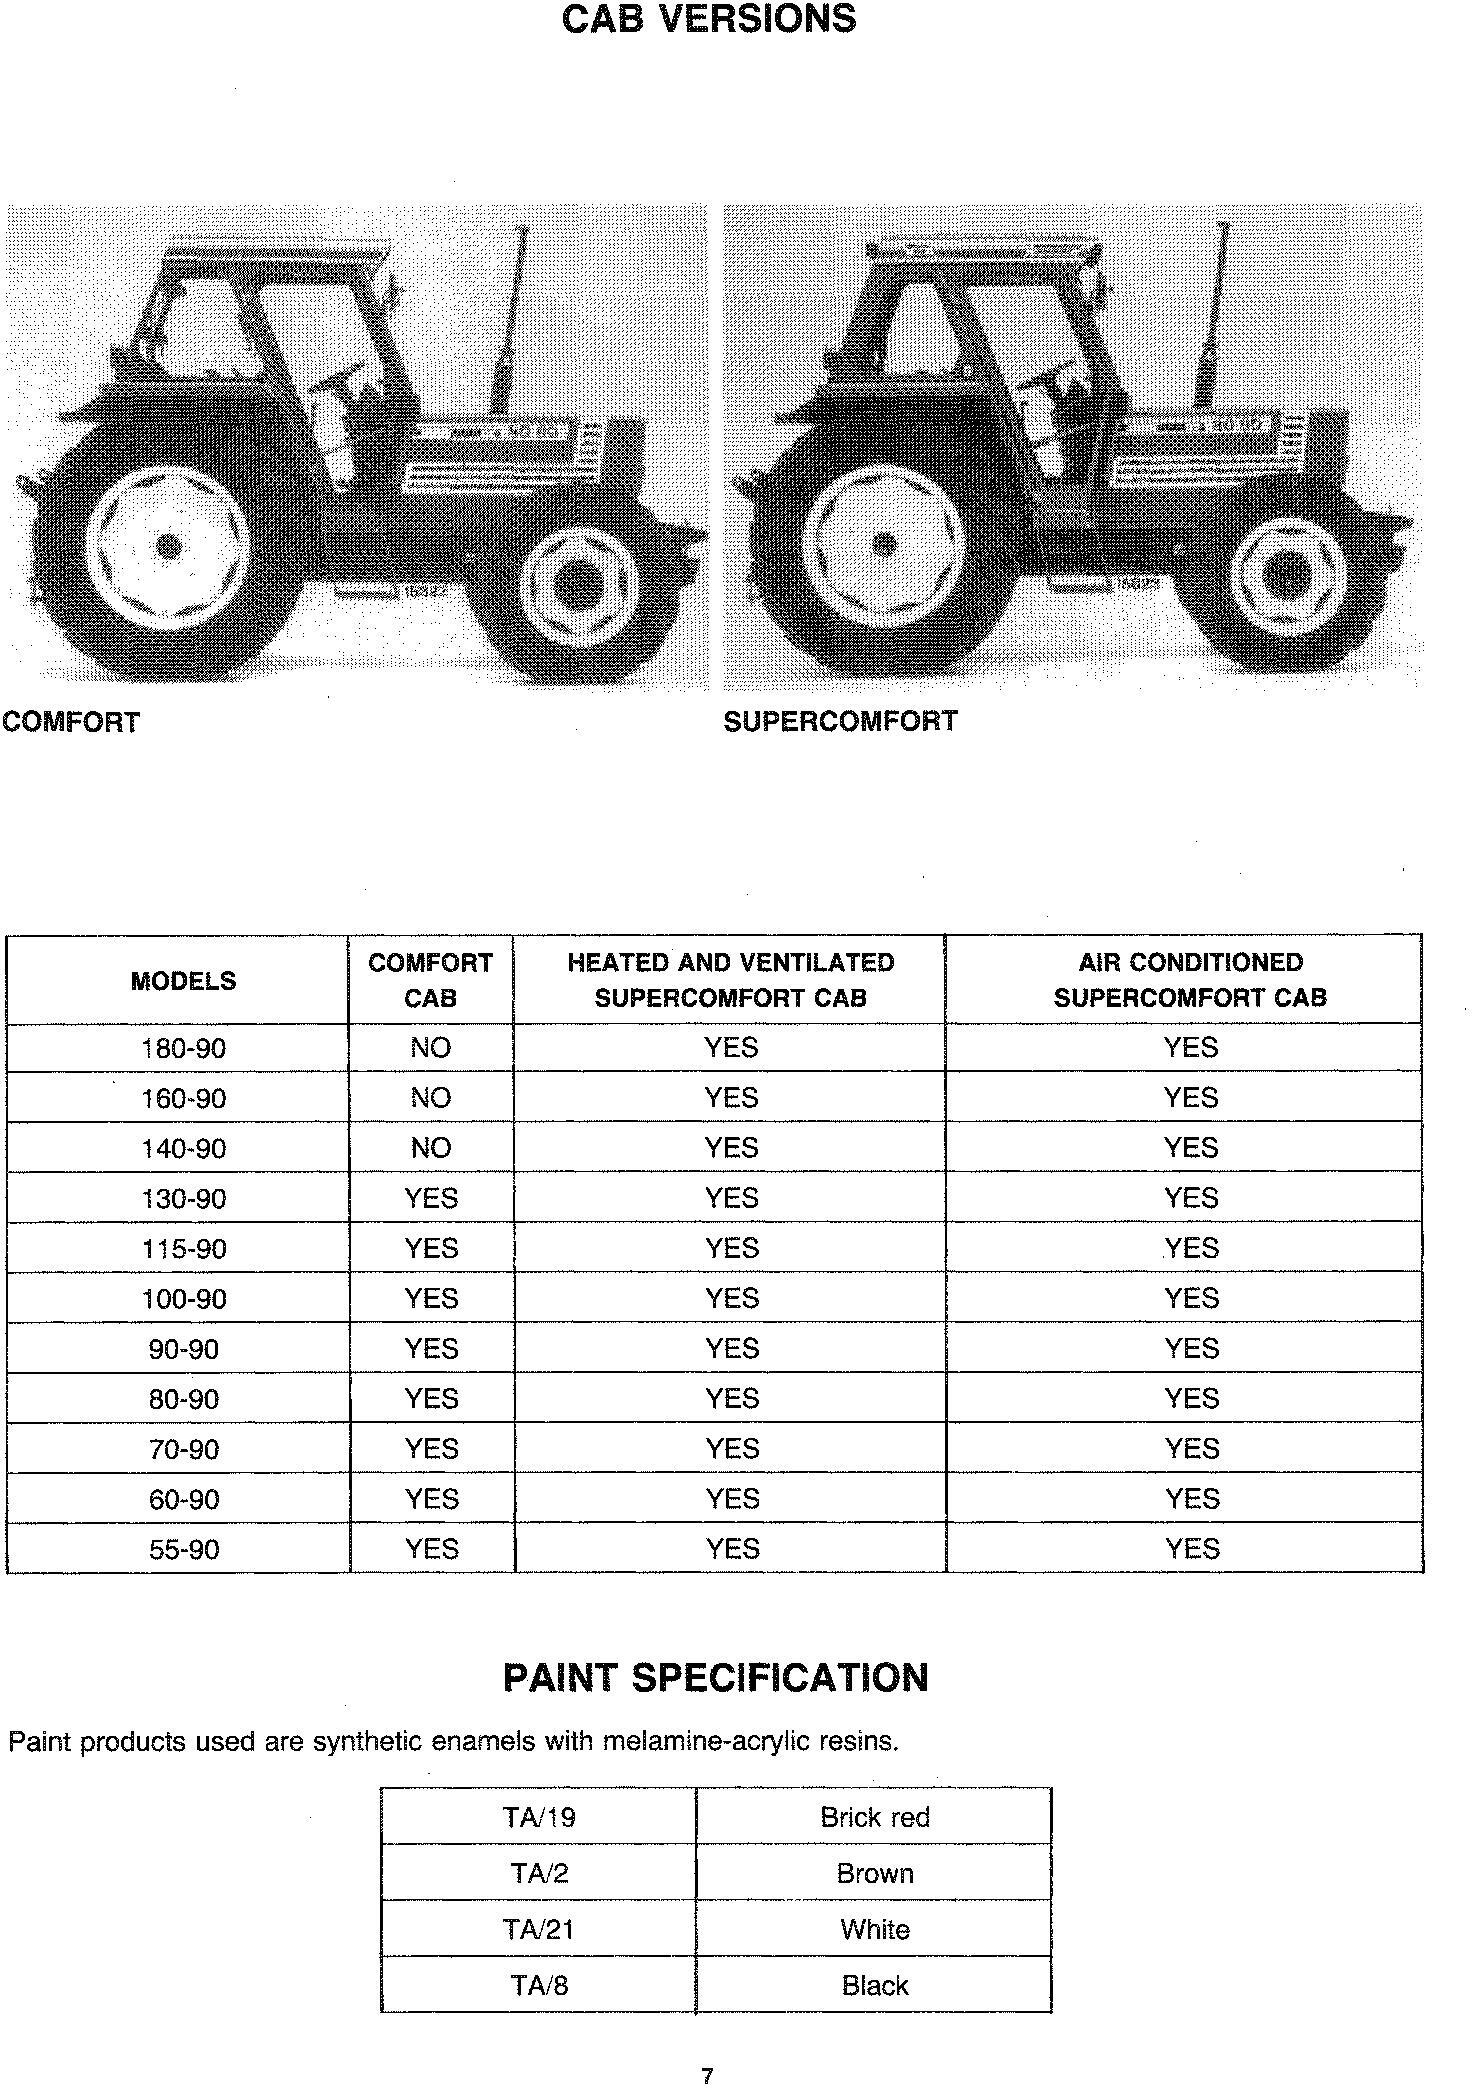 Fiat 55-90 60-90 70-90 80-90 90-90 100-90 115-90 130-90 140-90 160-90 180-90 Tractor Service Manual - 1